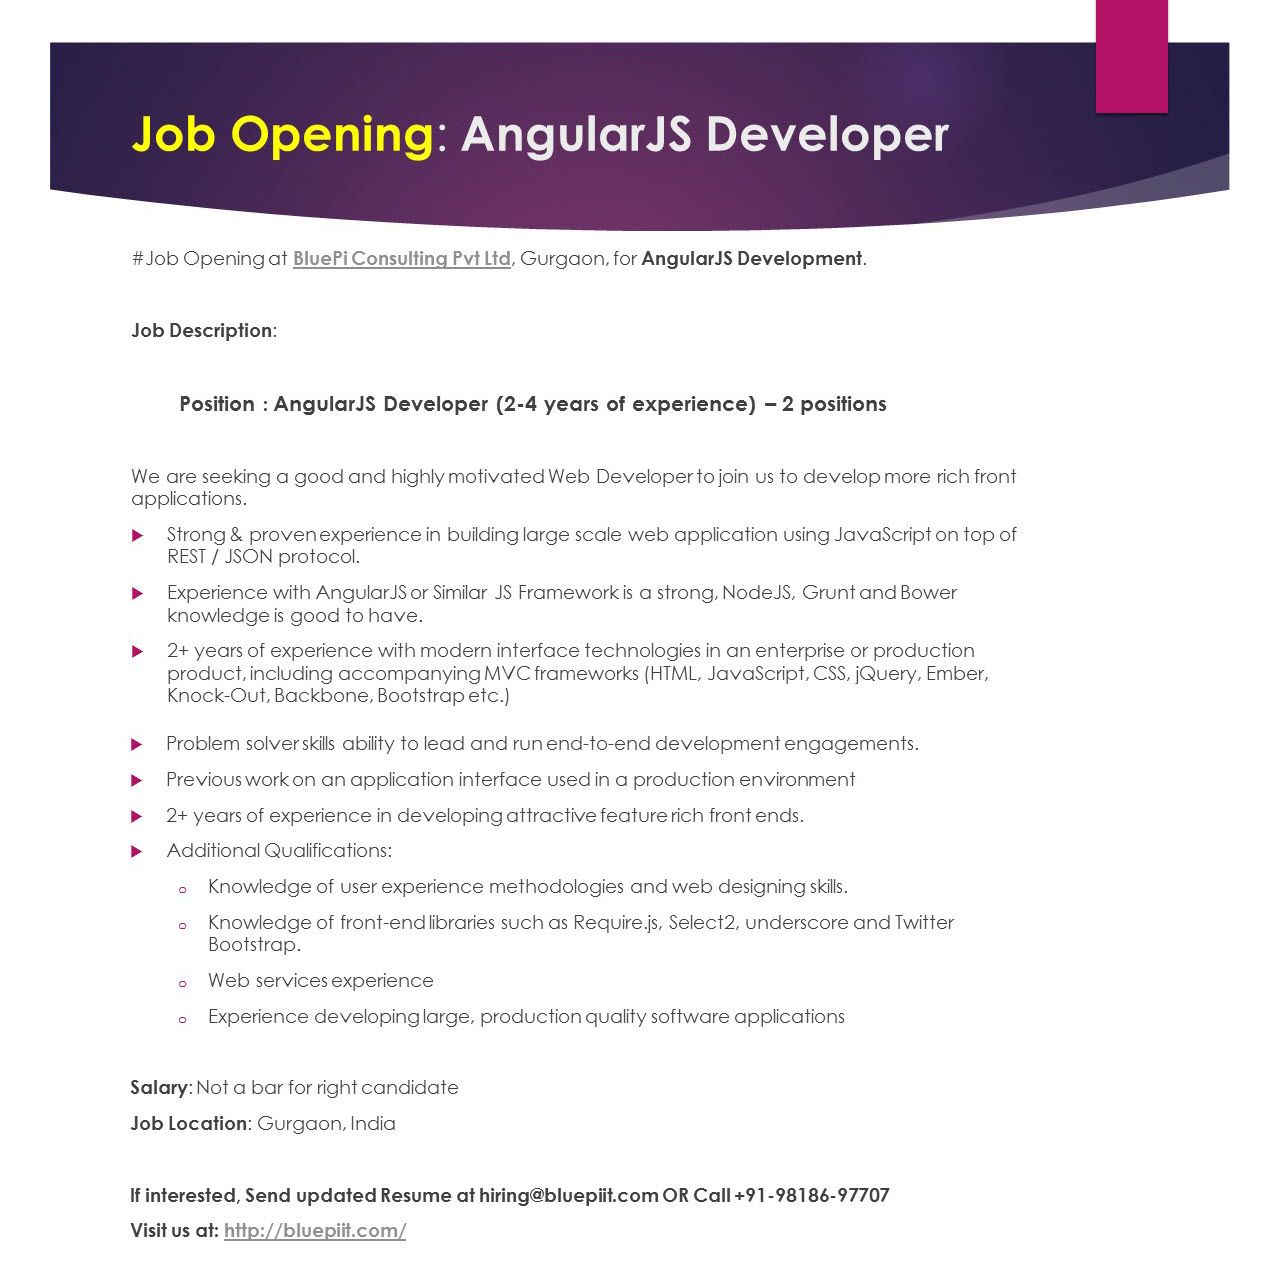 angularjs developer 2 years of experience job location resume curriculum - Angularjs Developer Resume